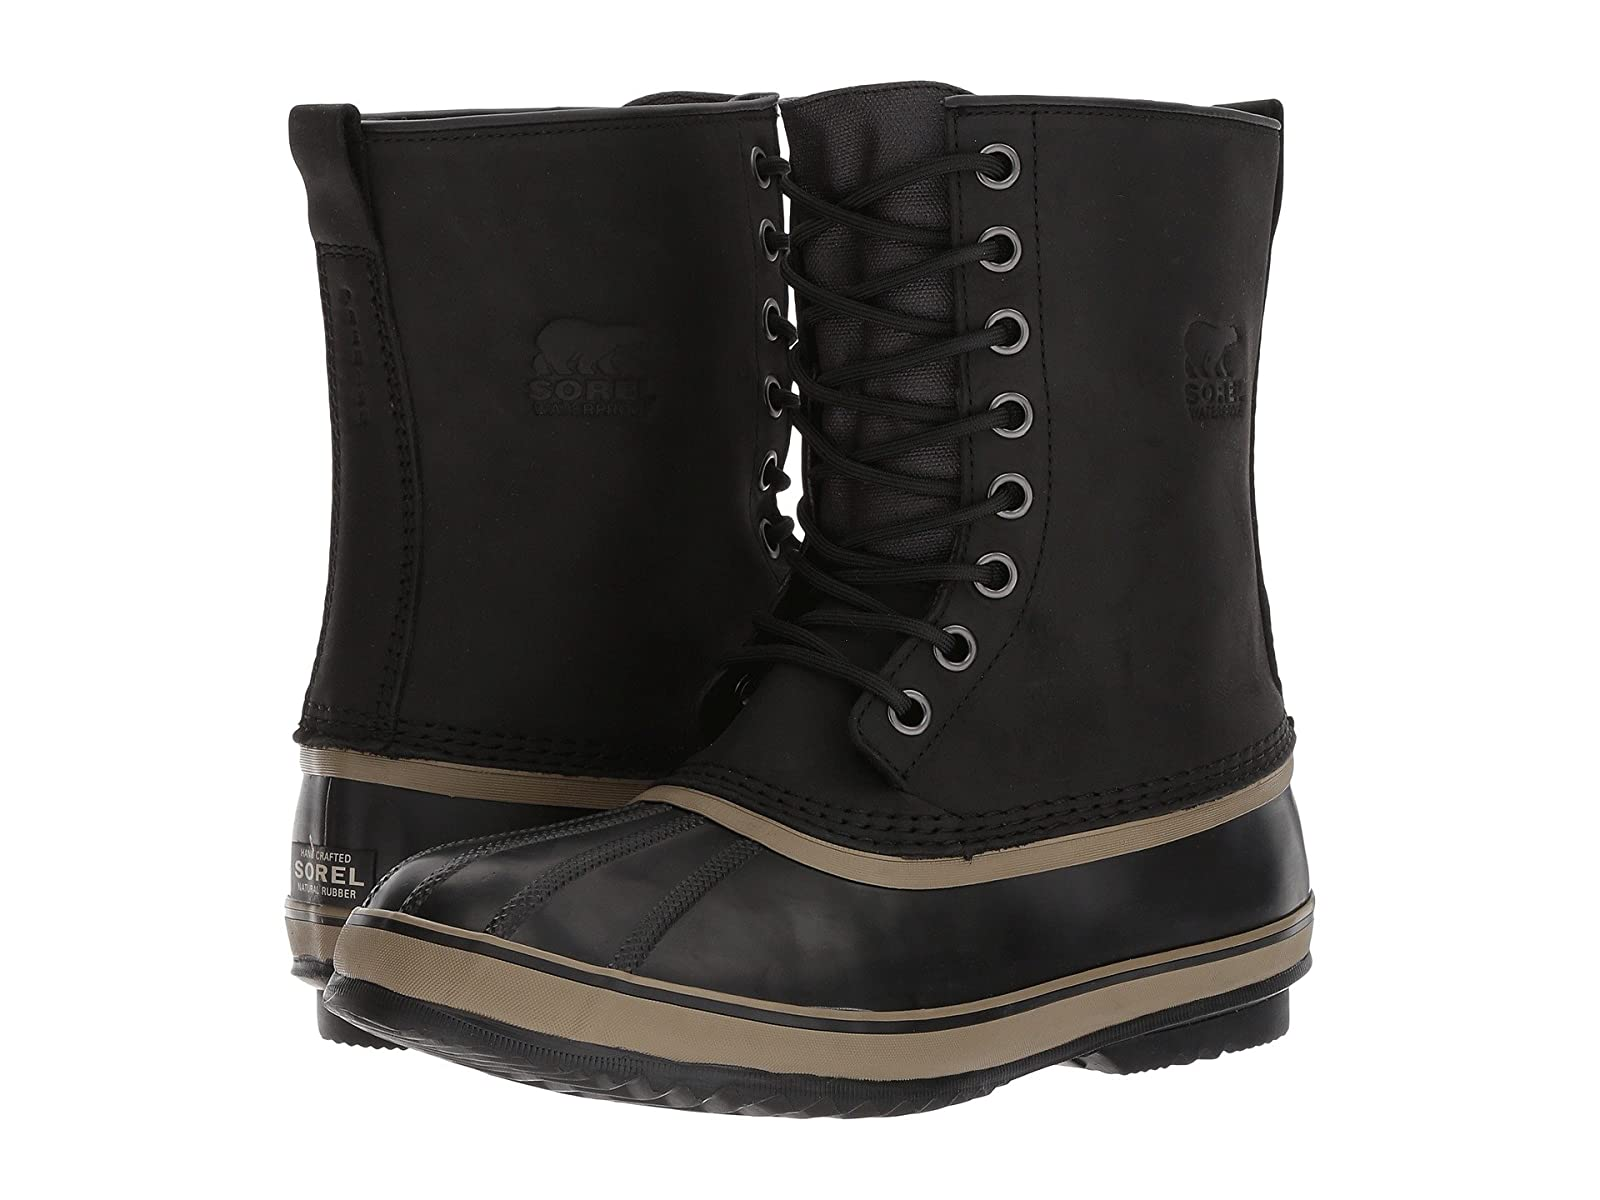 SOREL 1964 Premium TEconomical and quality shoes